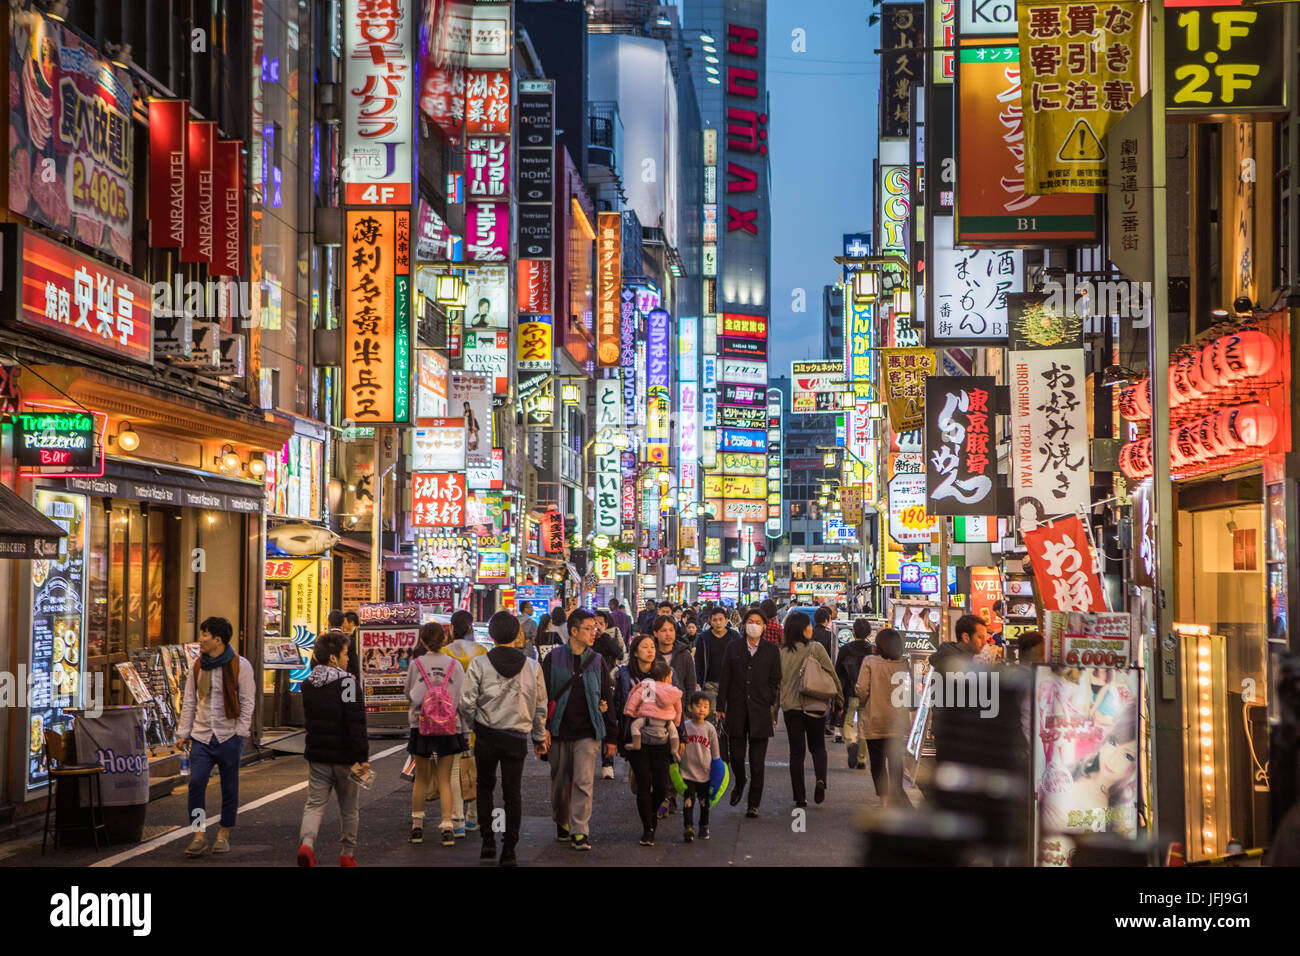 Japan, Tokyo City, Shinjuku District, Kabukicho district at night Stock Photo